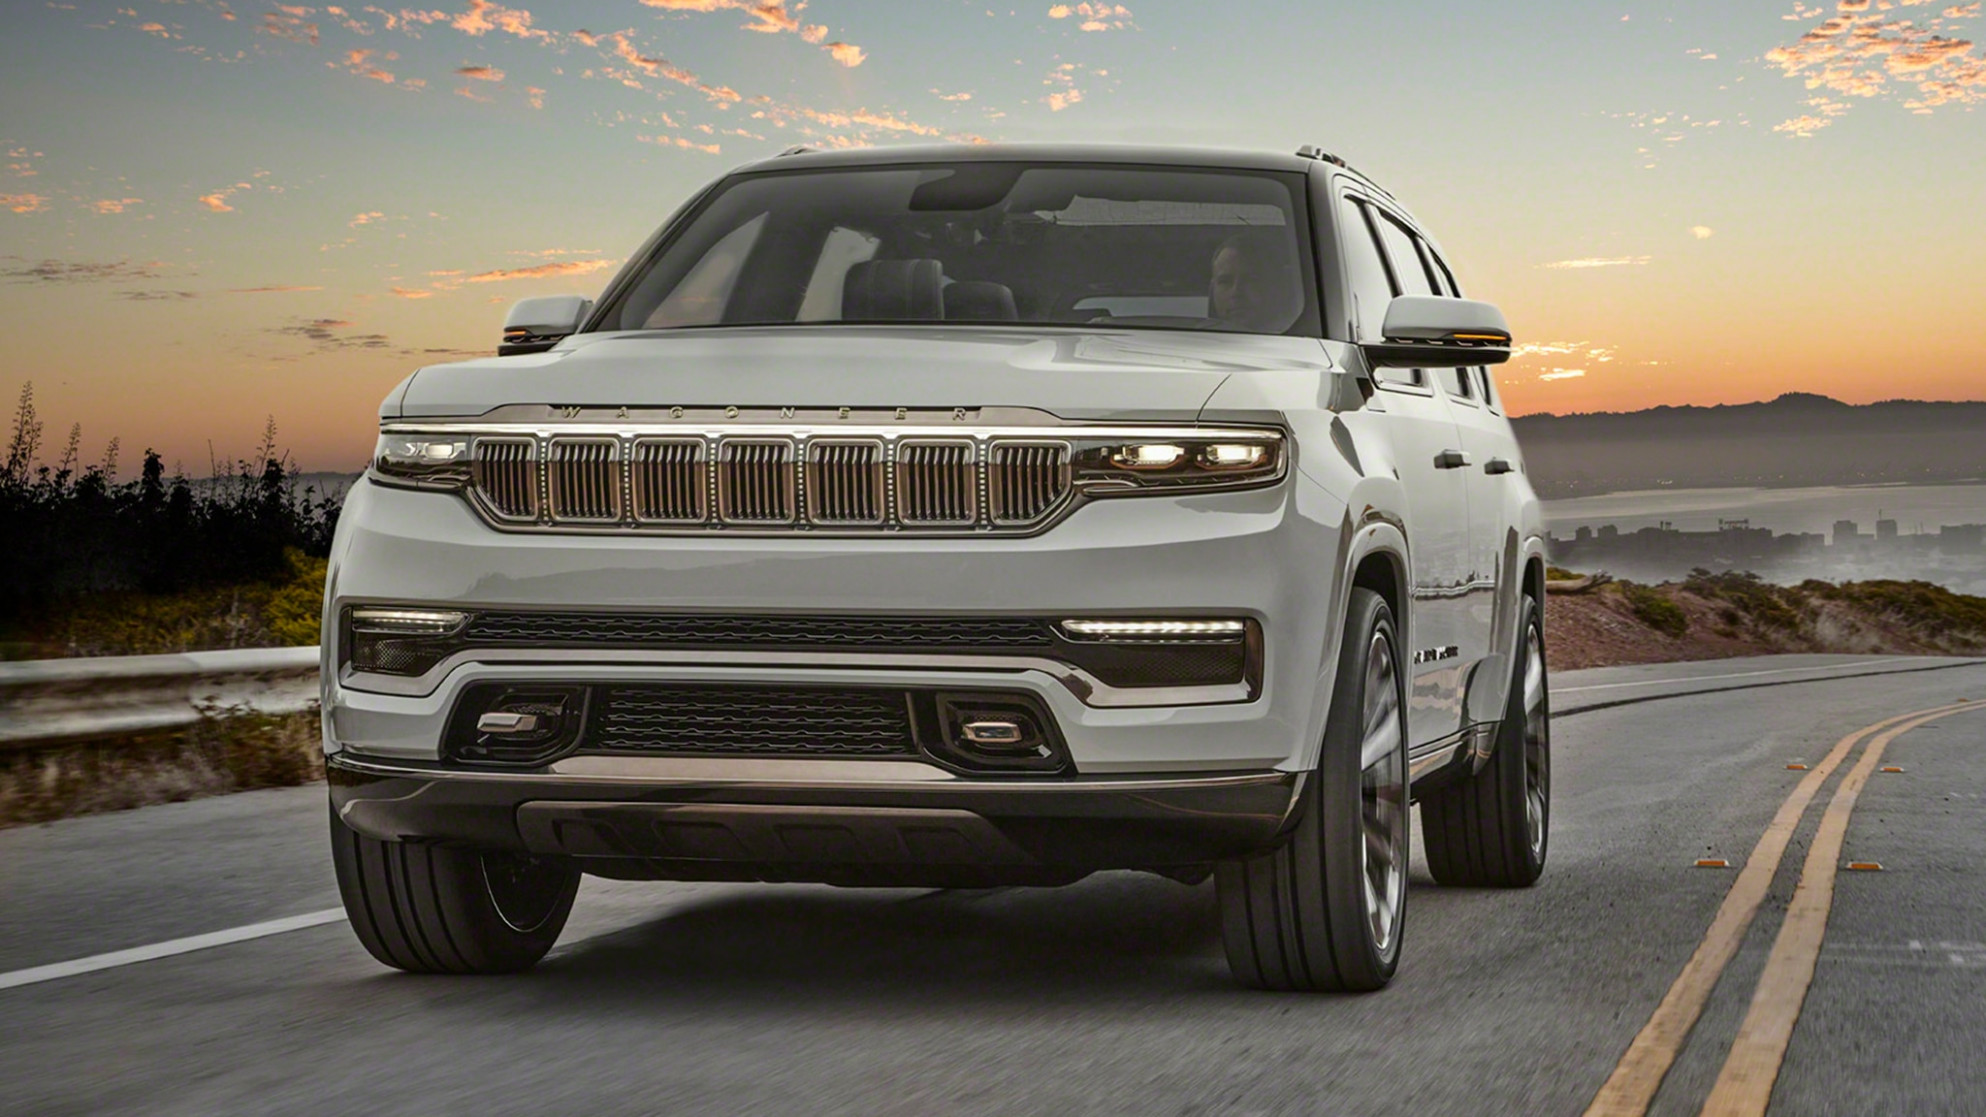 Performance and New Engine Jeep Truck 2022 Interior